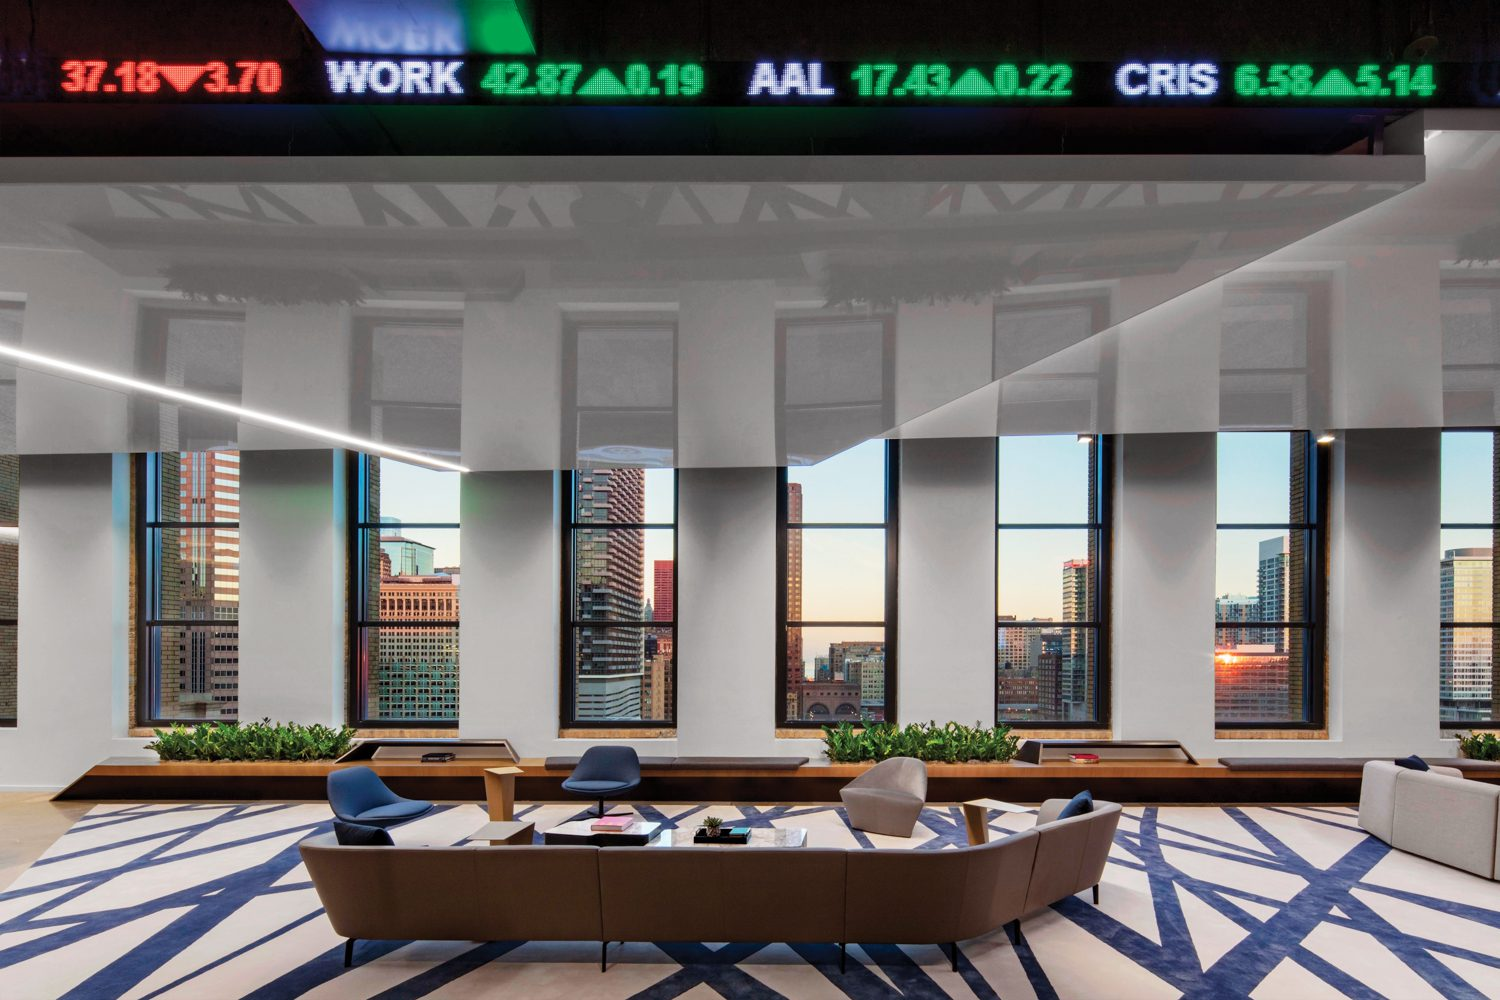 In reception at the Cboe Global Markets headquarters in Chicago by CannonDesign, Lievore Altherr Molina's Loop sofa and Kelly Wearstler's Channels rug introduce the angular concept carried throughout the three-floor office.